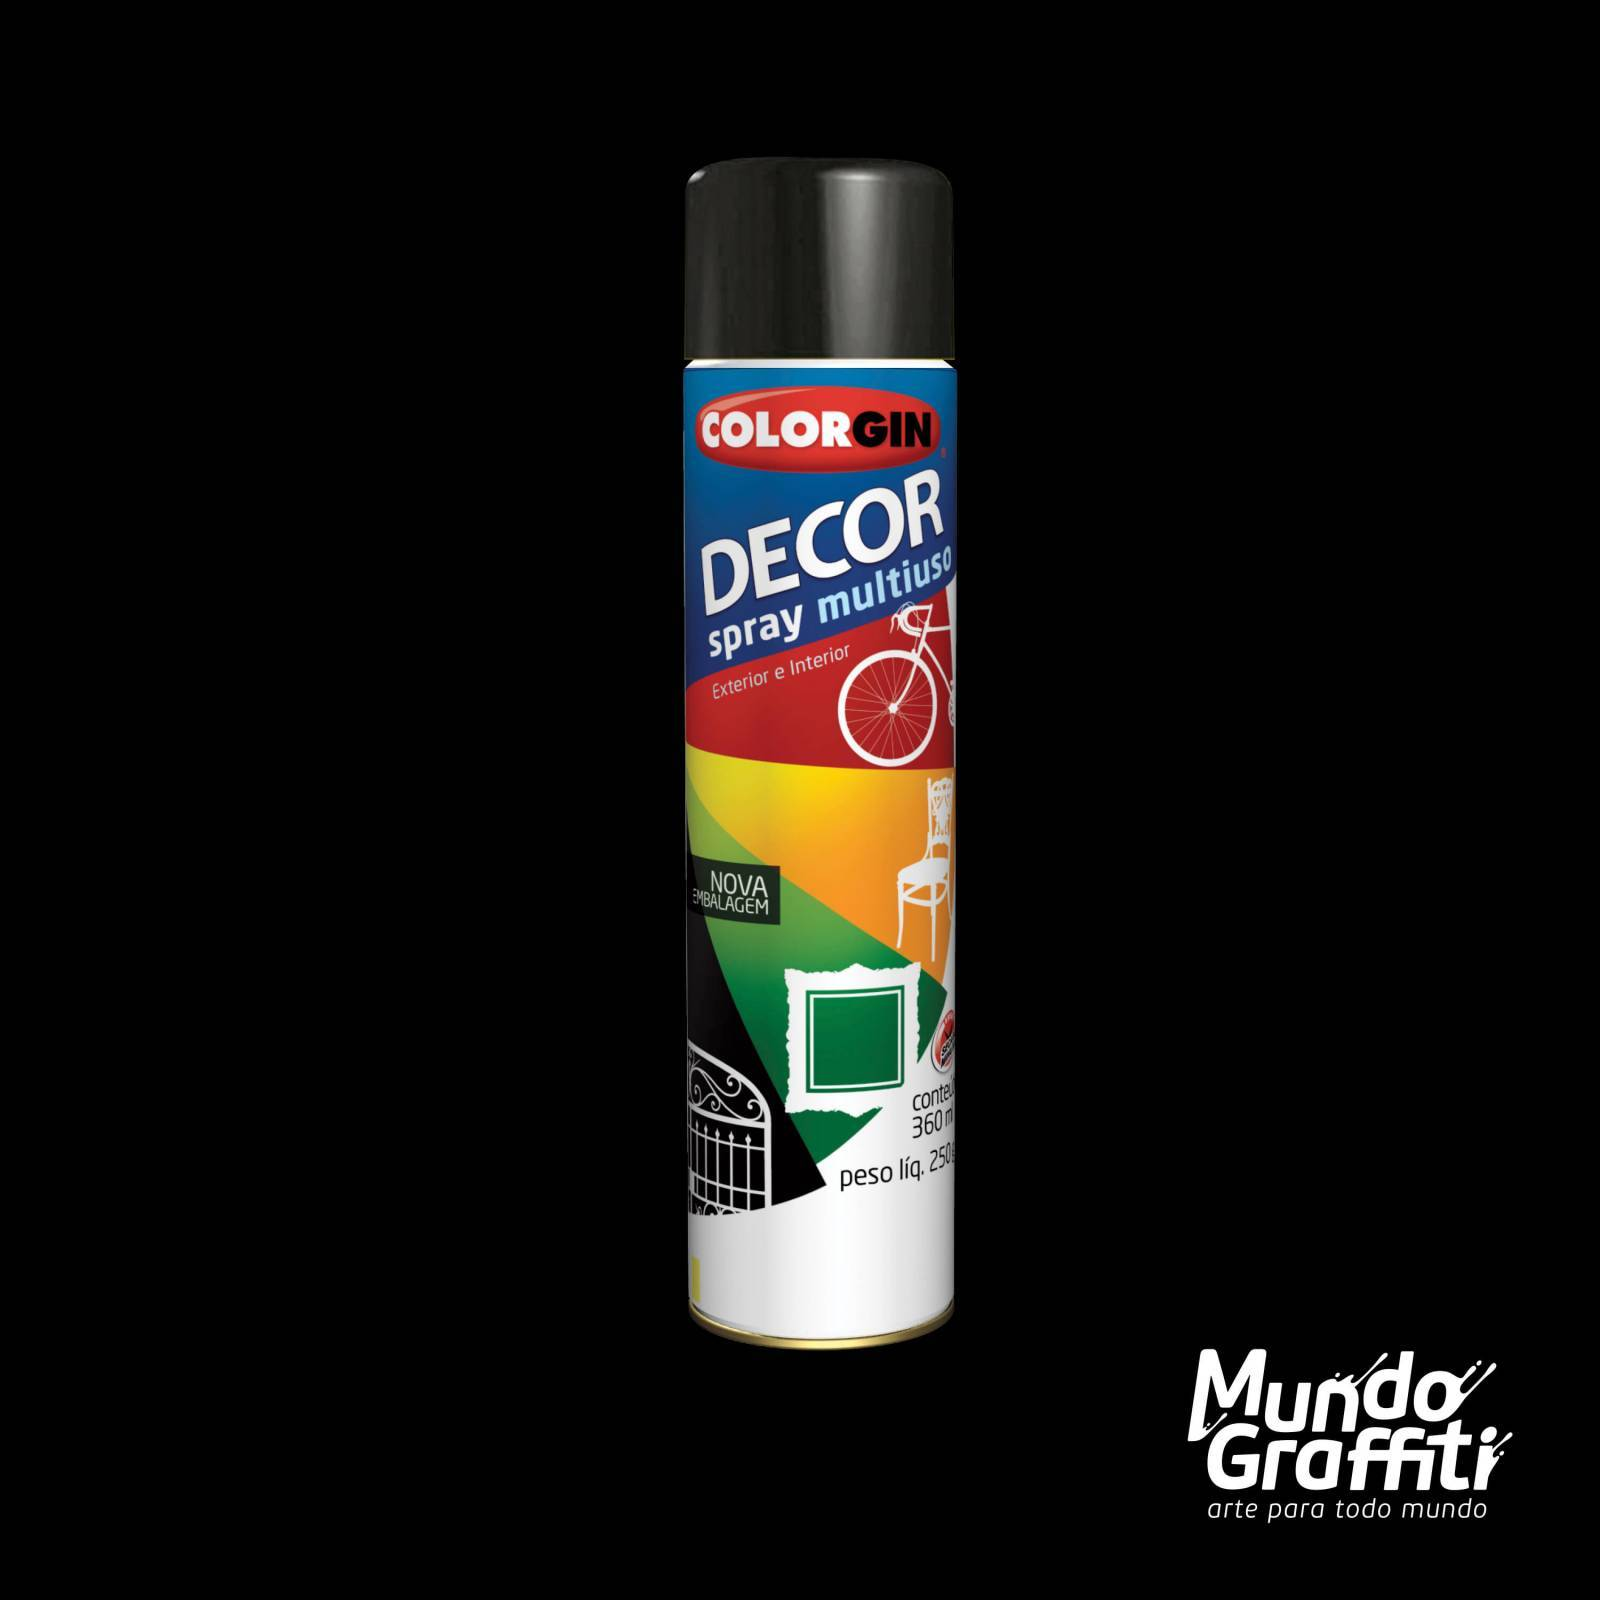 Tinta Spray Colorgin Decor 8701 Preto Brilhante 360ml - Mundo Graffiti